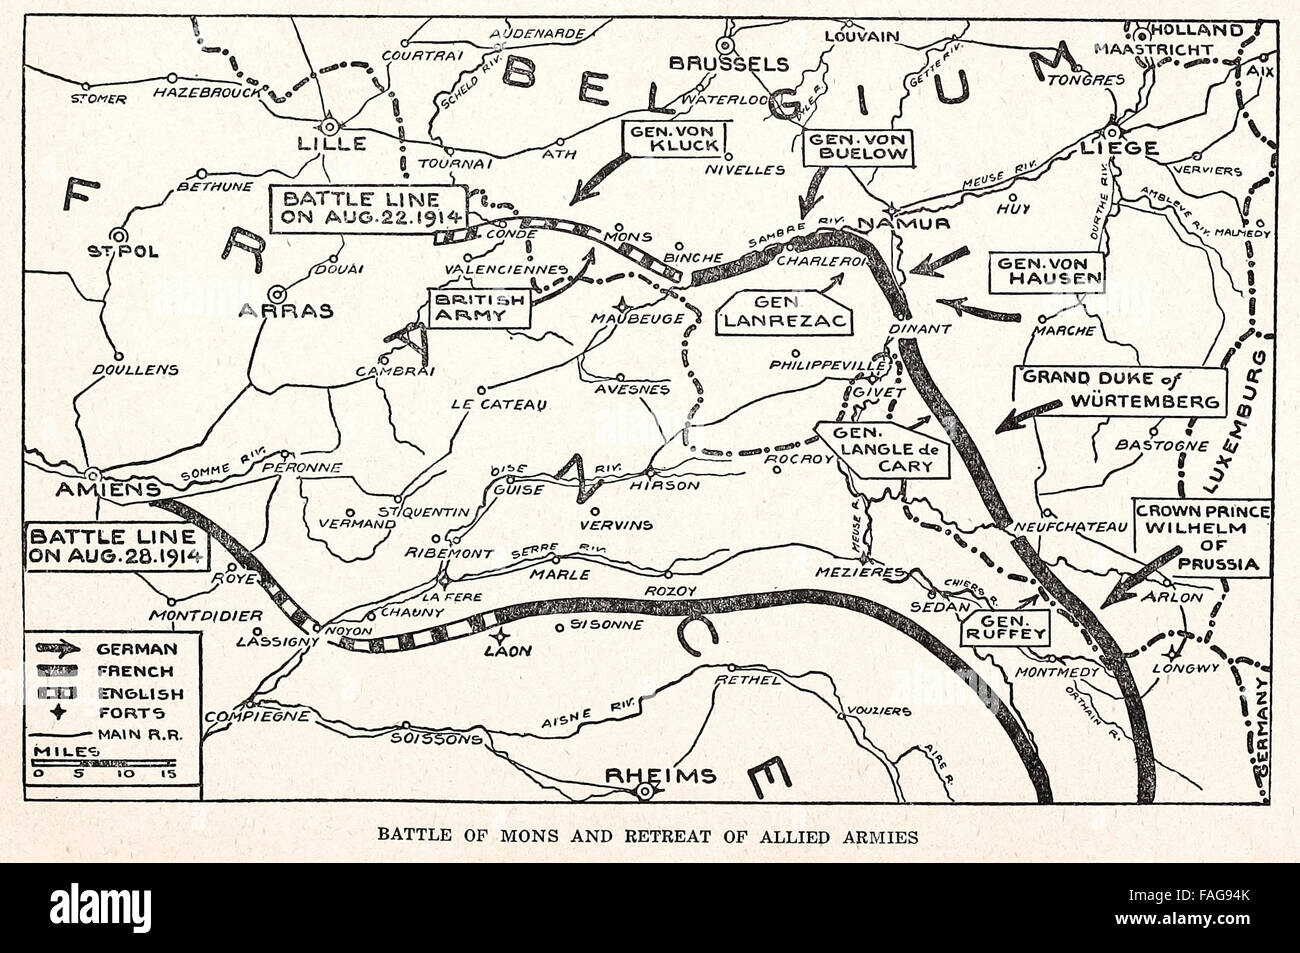 Battle of Mons and the retreat of the Allied Armies, World War I - Stock Image